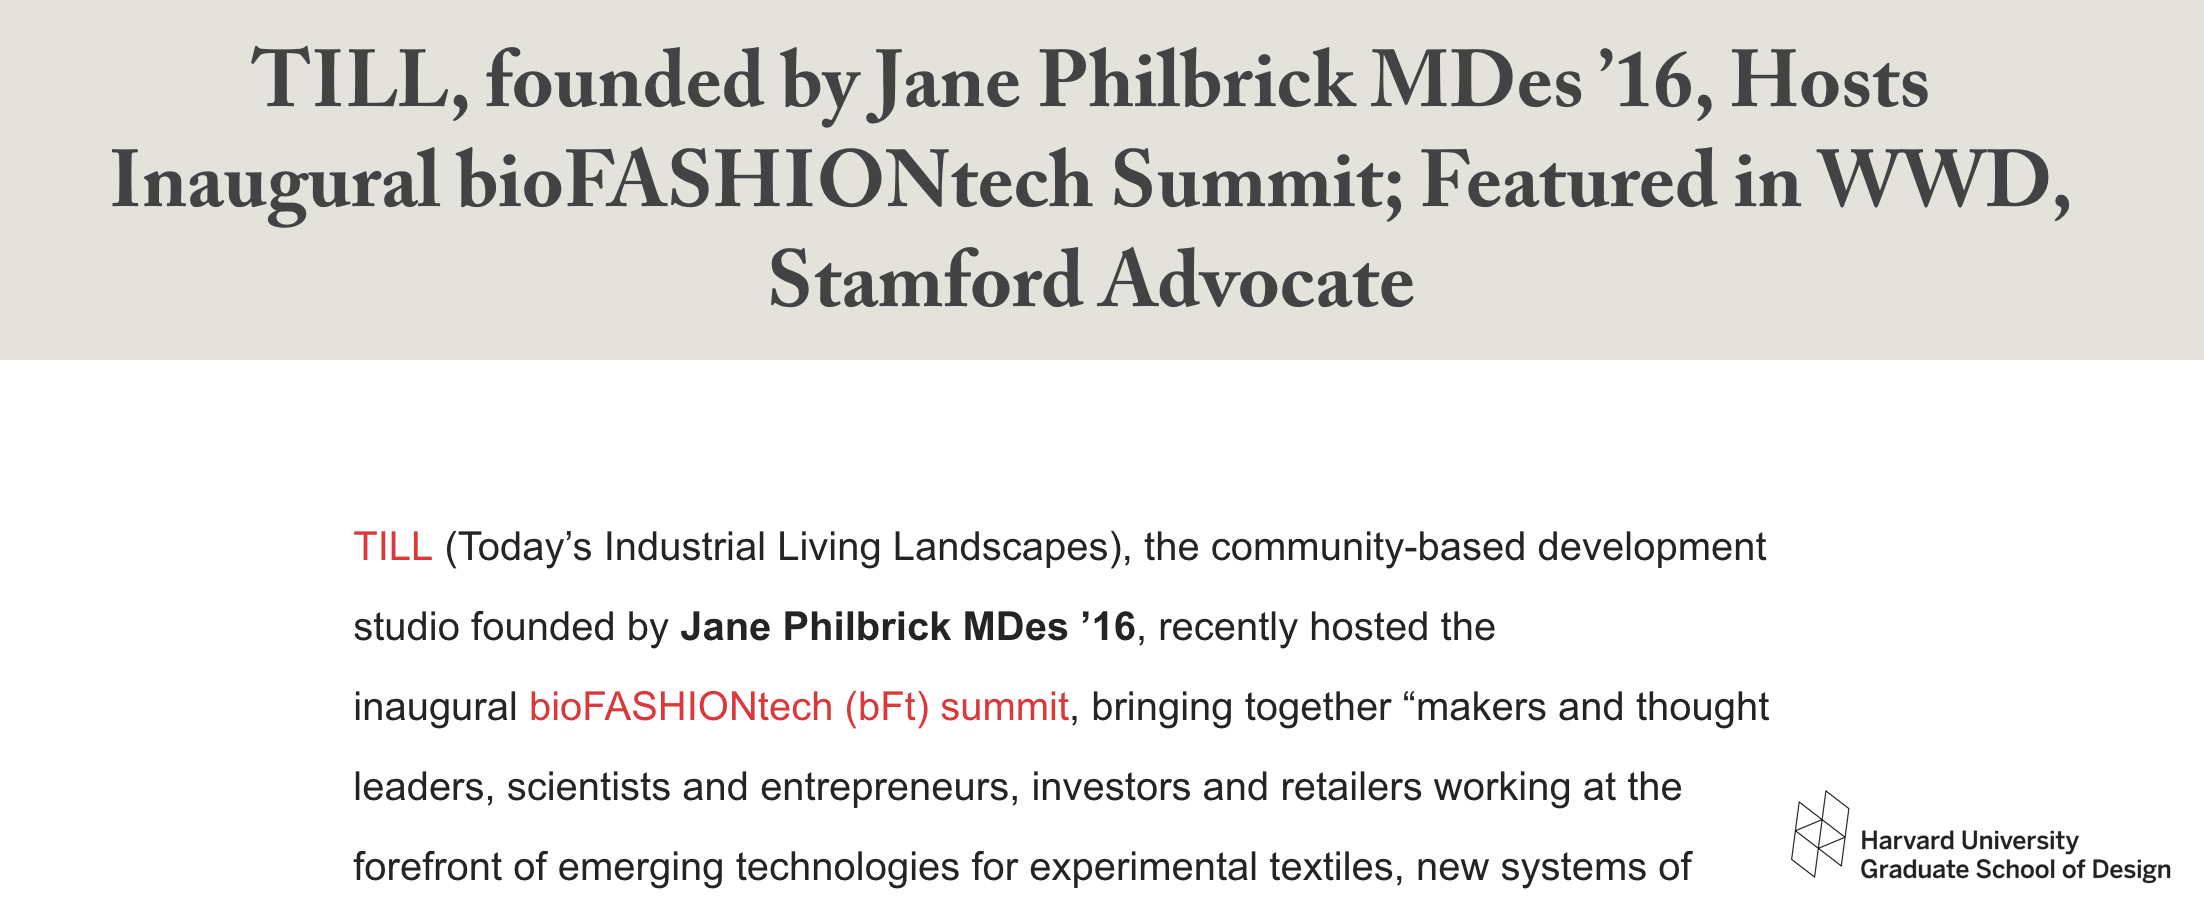 "Grounded Visionaries: ""TILL, founded by Jane Philbrick MDes '16, Hosts Inaugural bioFASHIONtech Summit"" - ""We want to make Connecticut the U.S. capital of sustainable fashion by 2022.""July 2019"